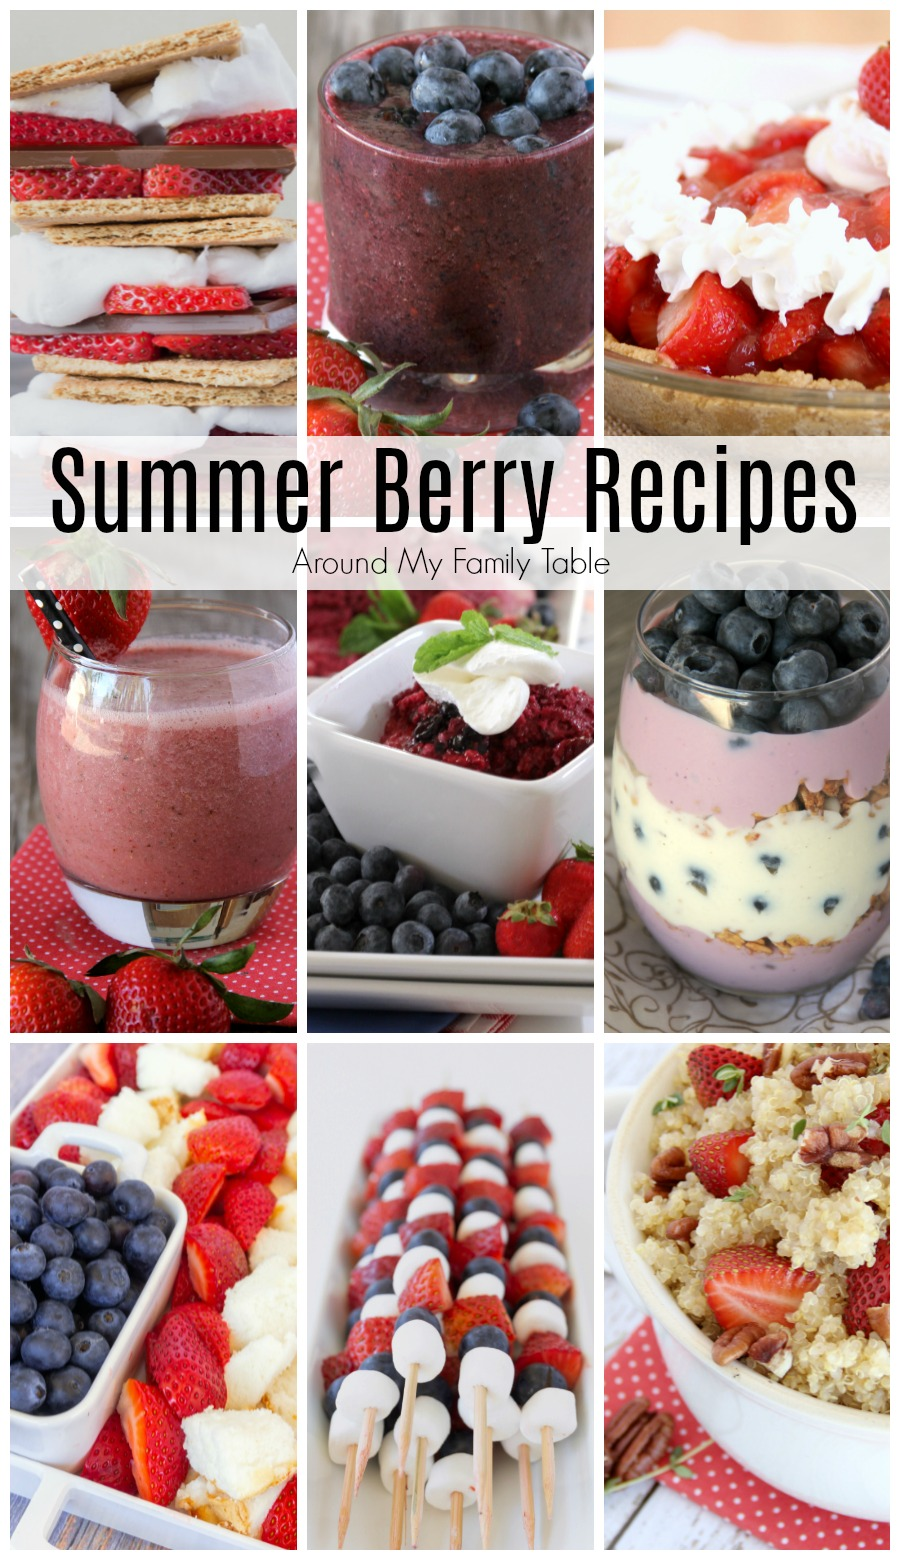 Summer is berry season!  I've got 33 delicious & easy Summer Berry Recipes that you have to try this year.